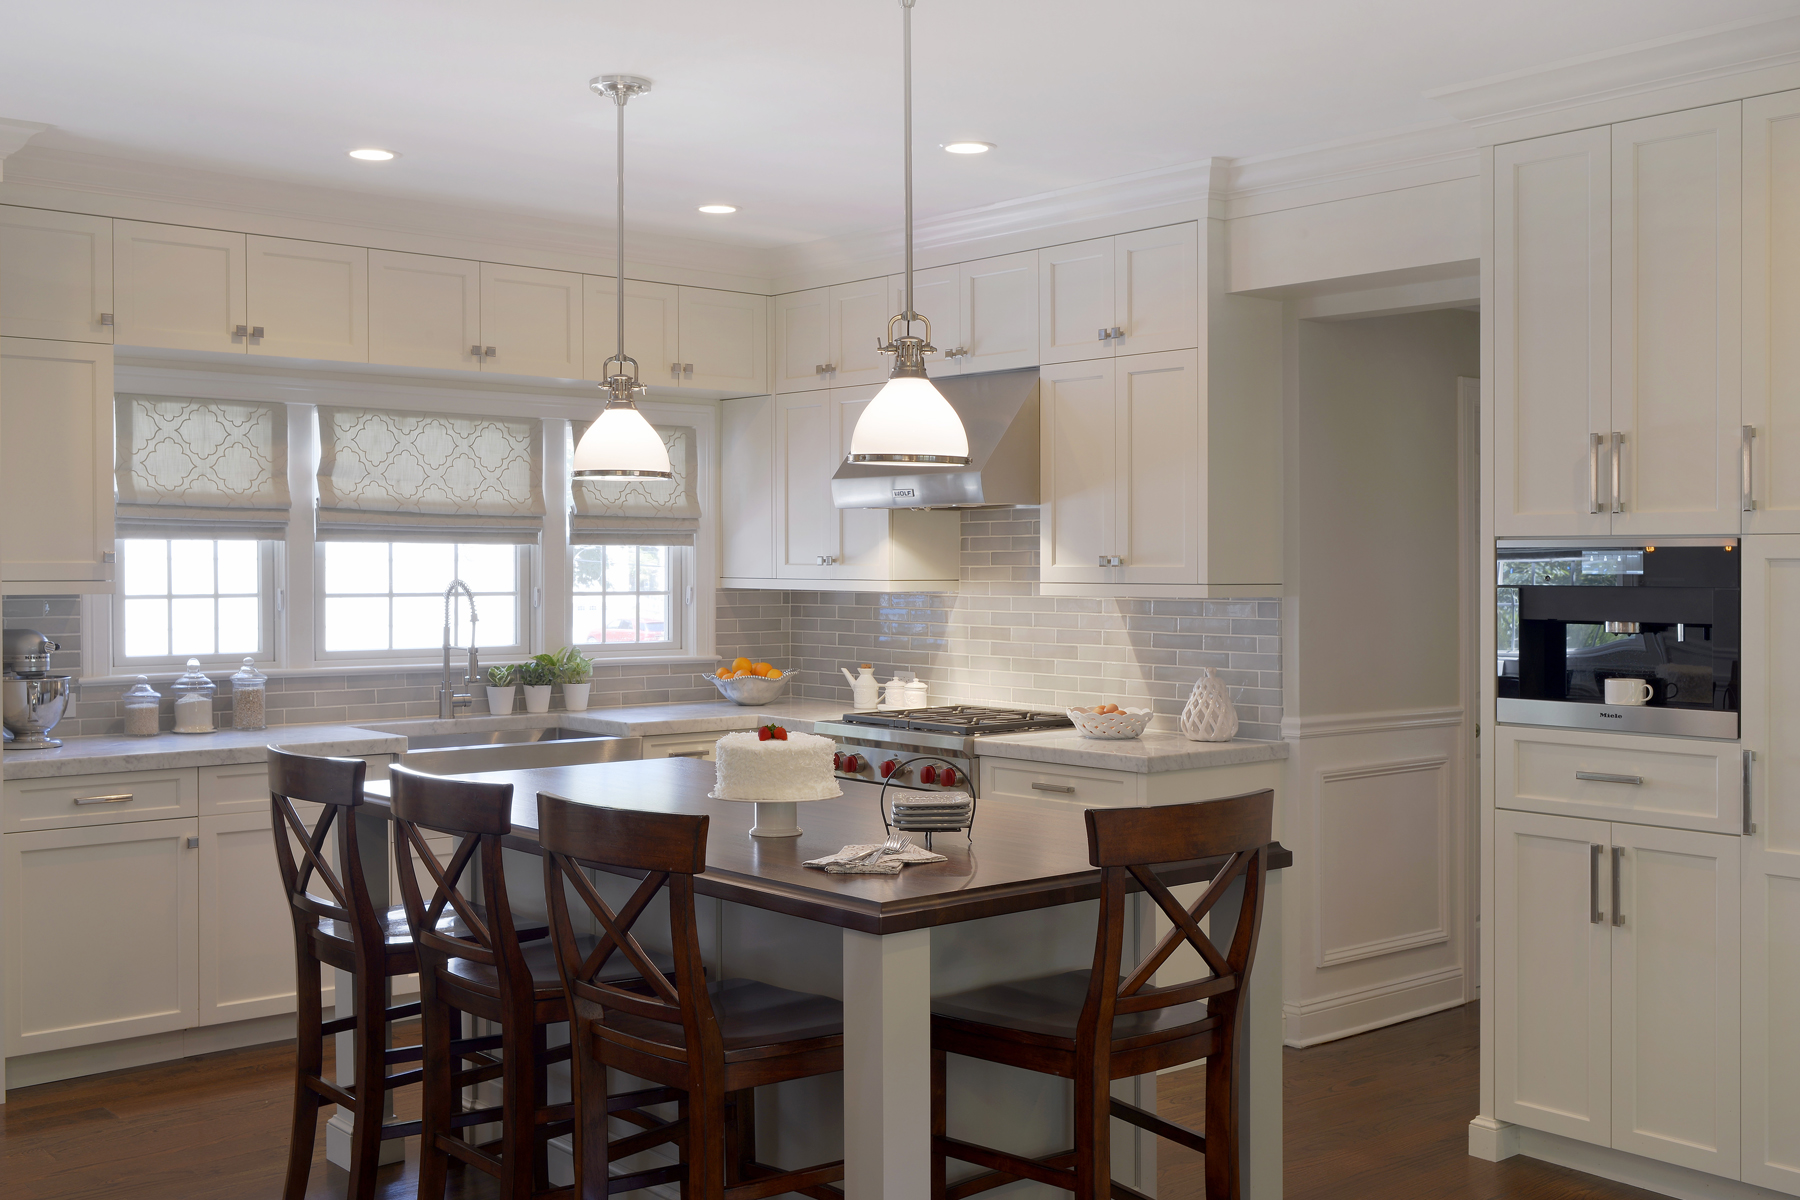 L Shaped Transitional Kitchen Features Island With Seating And Fully  Custom, Double Tiered